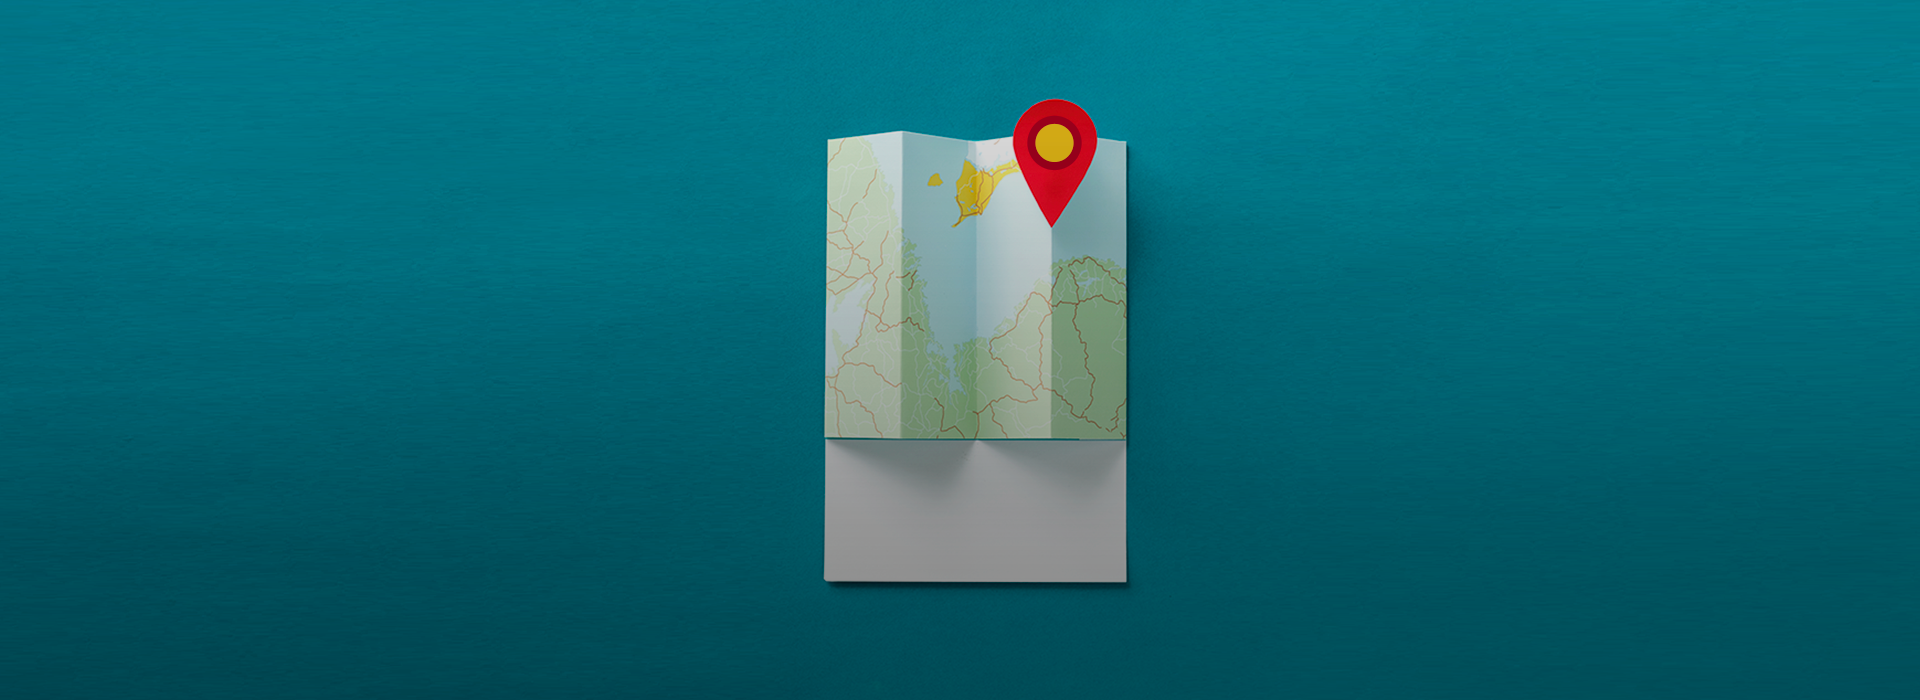 A pin on a map